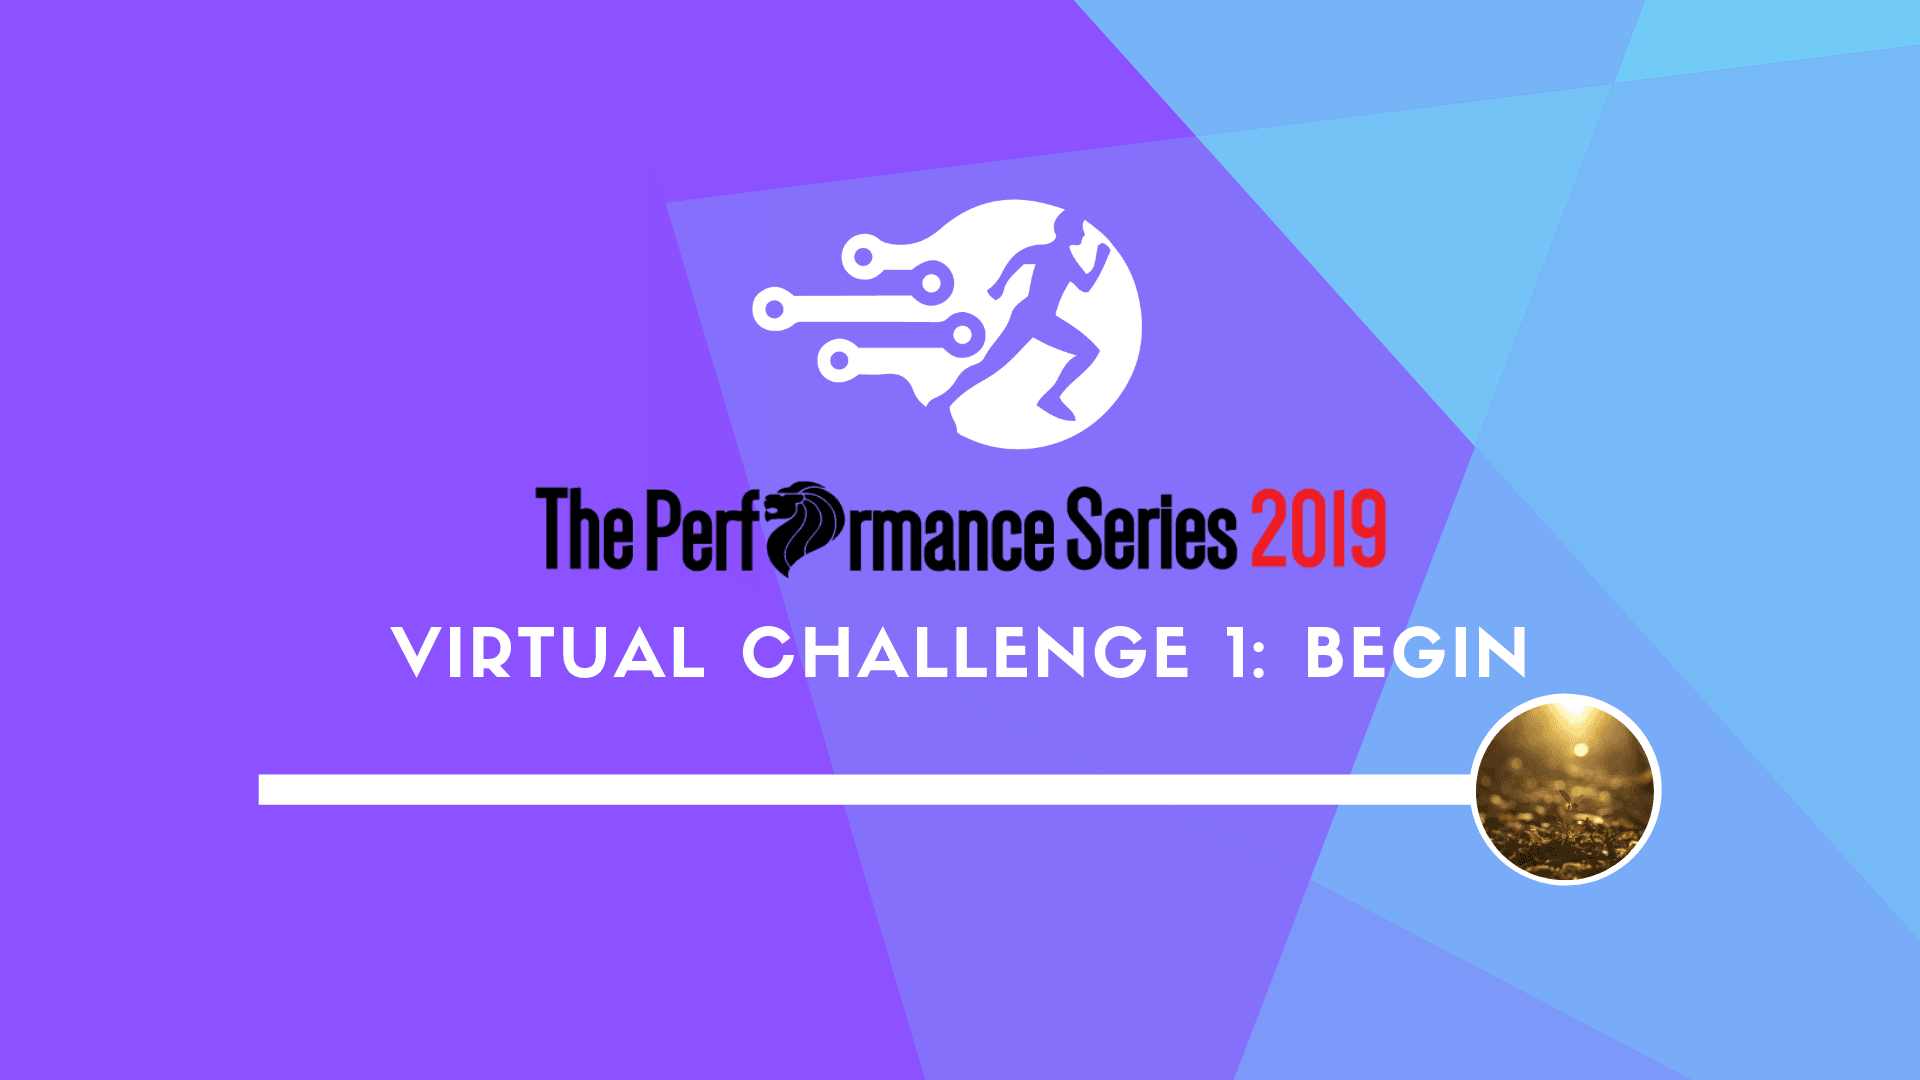 Logo of The Performance Series 2019 Virtual Challenge 1: Begin